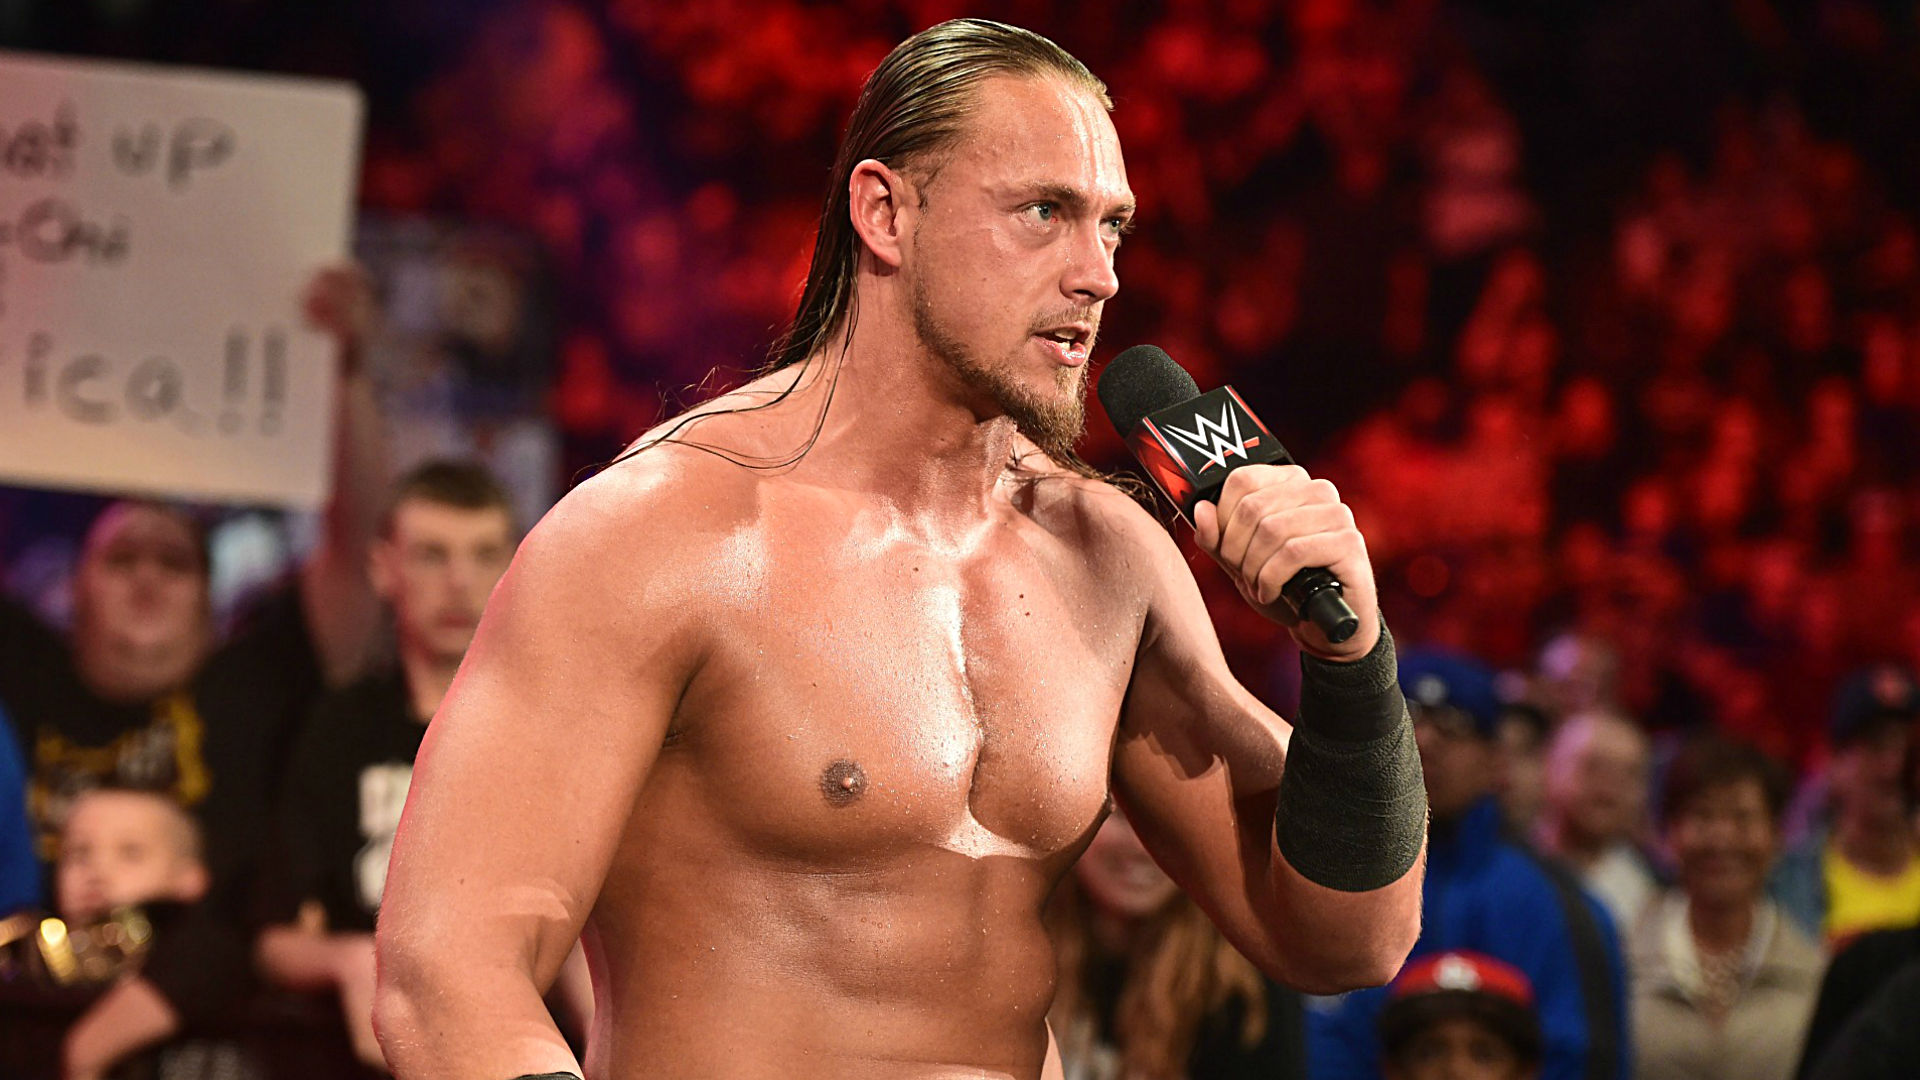 WWE Releases Big Cass After Money In The Bank PPV